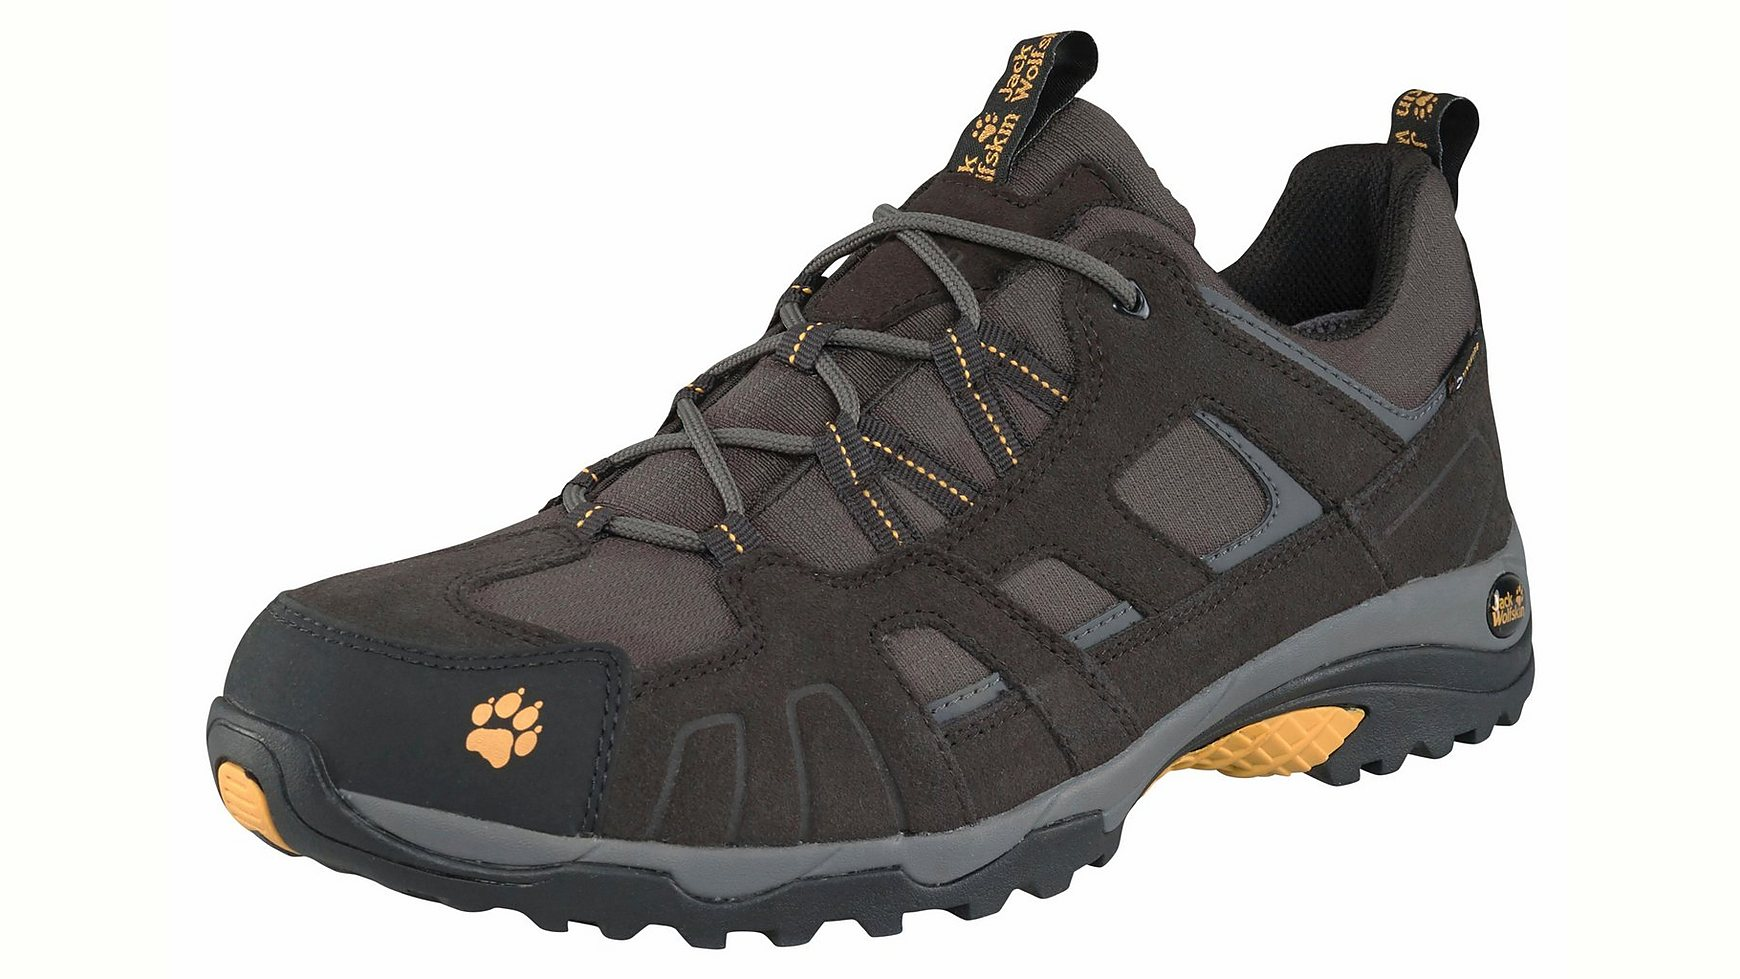 Jack-Wolfskin-Outdoorschuh-Vojo-Hike-Texapore-Men-17990004